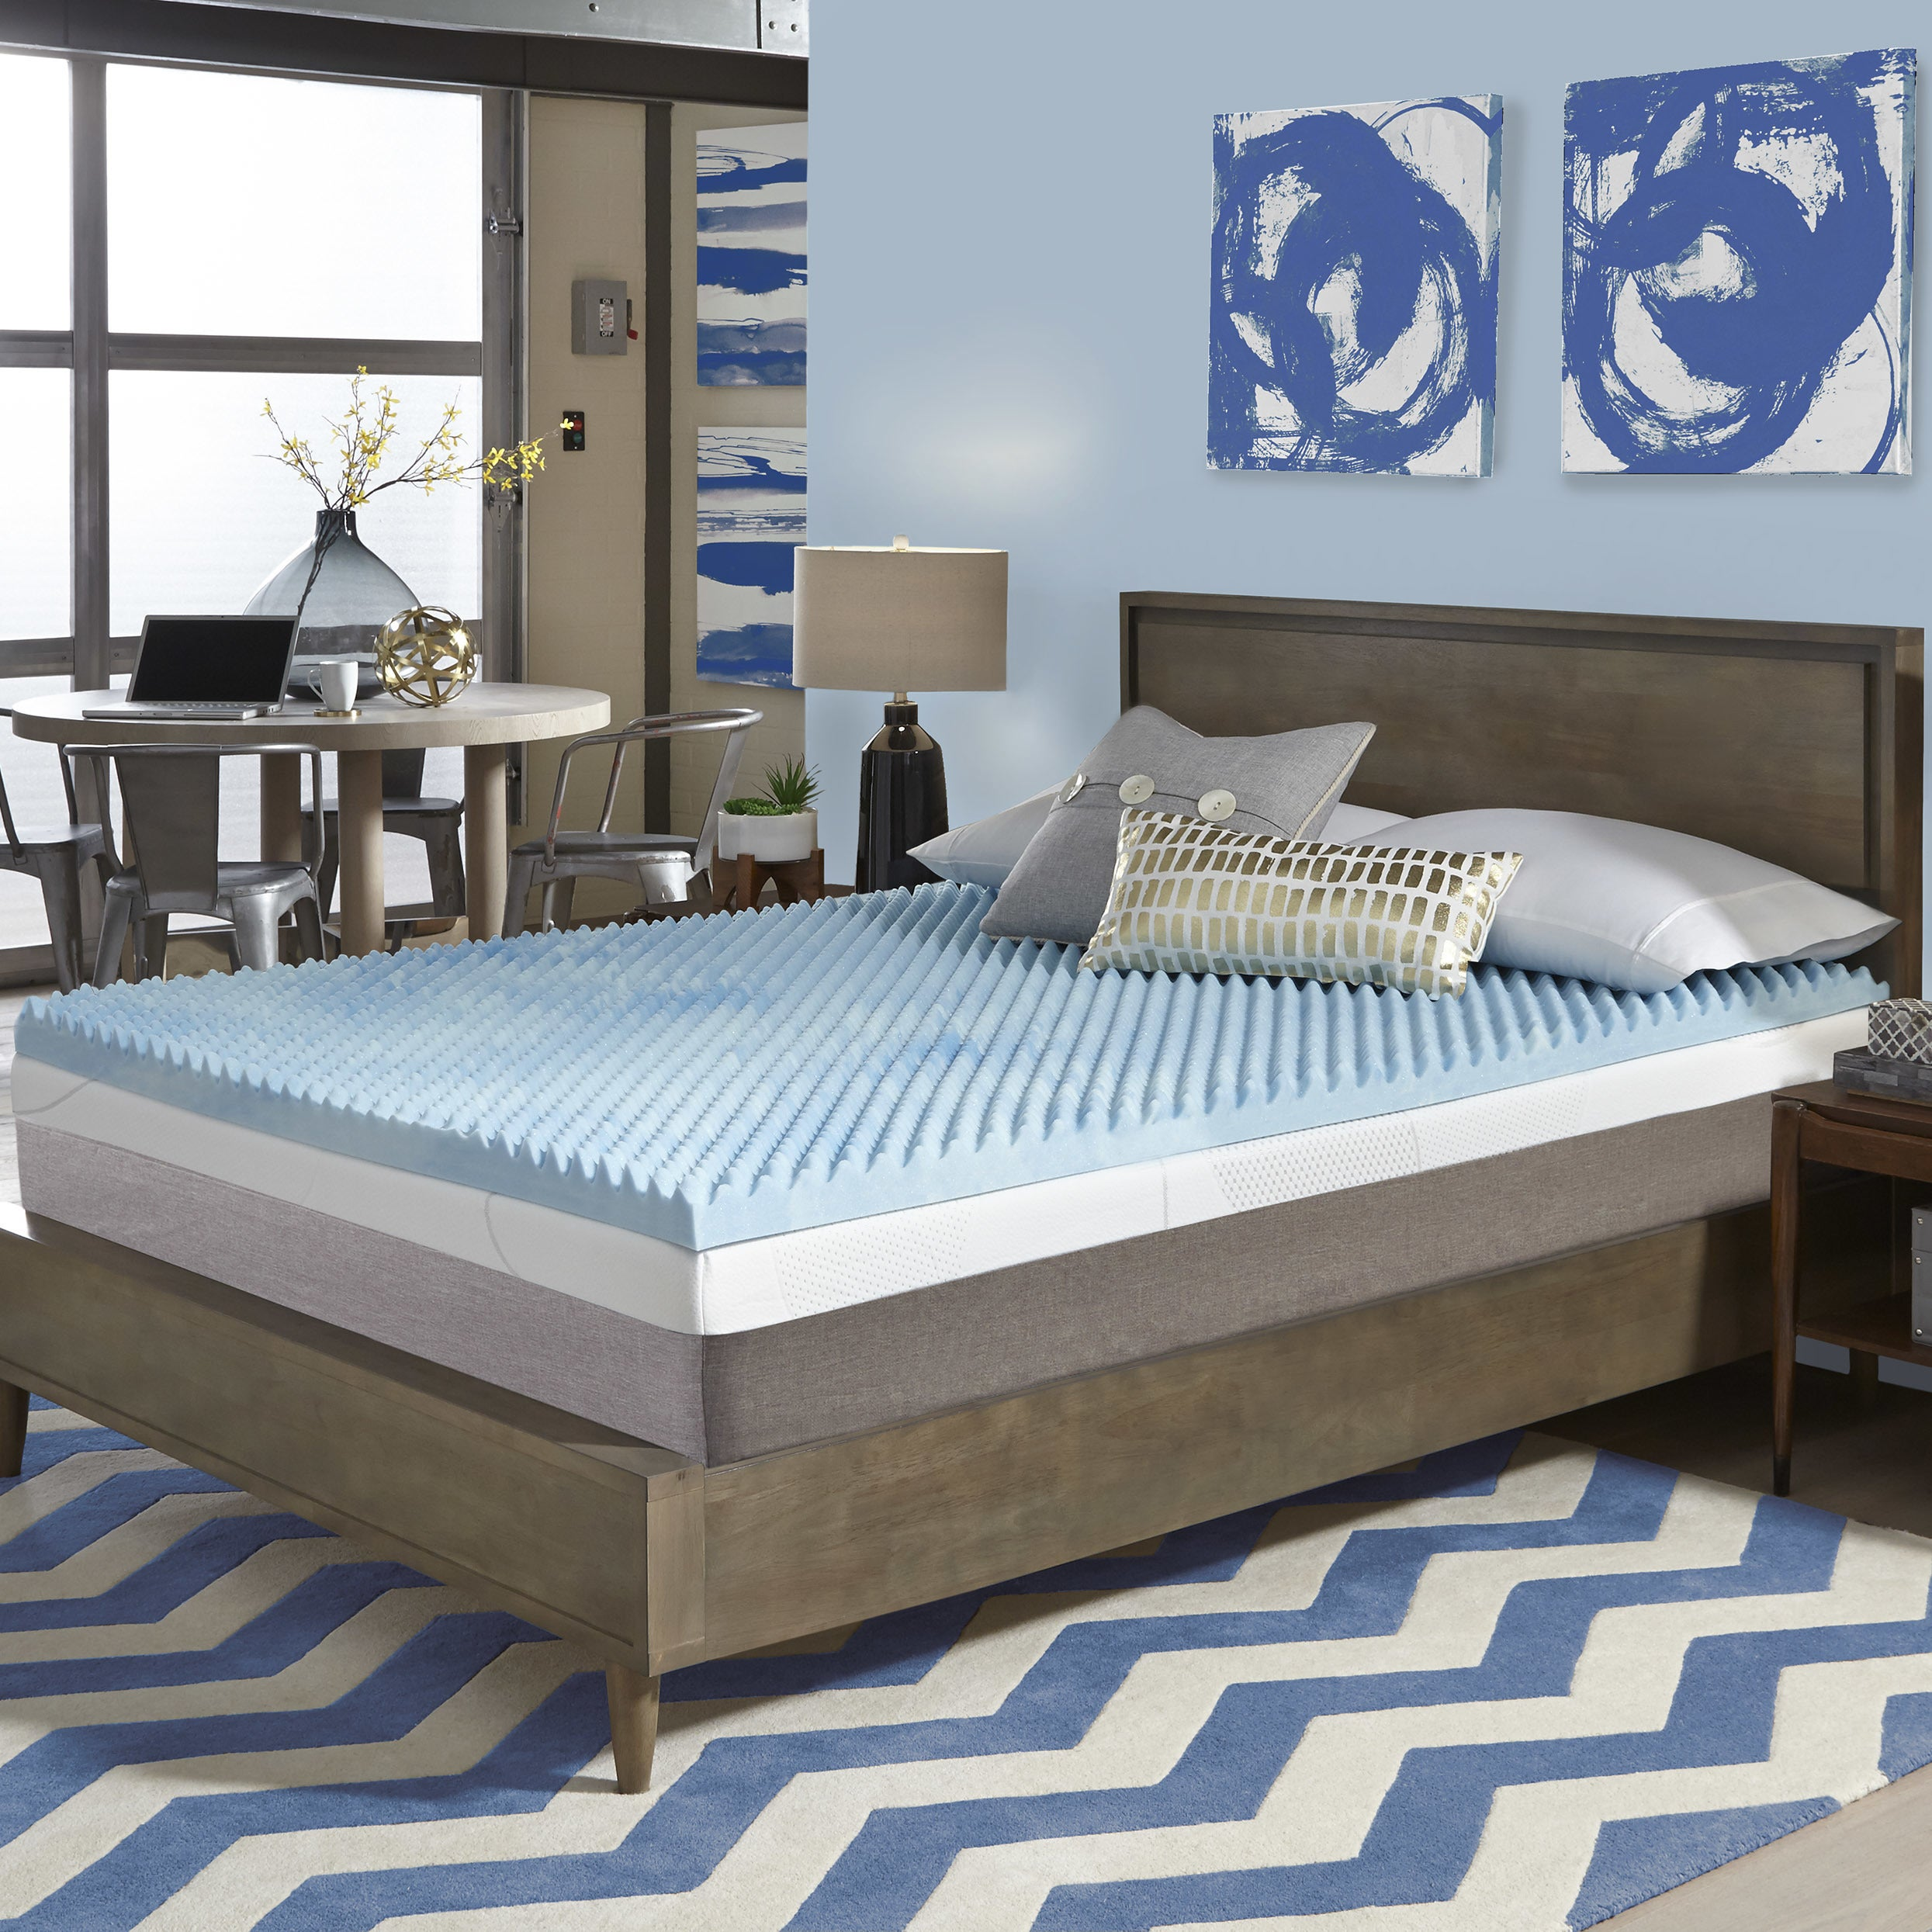 awesome amazing gel and foam costco topper size bedroom beyond xl winsome sculpted looking walmart nightstands inch bath ultimate memory twin good mattress serta beautyrest tempurpedic king